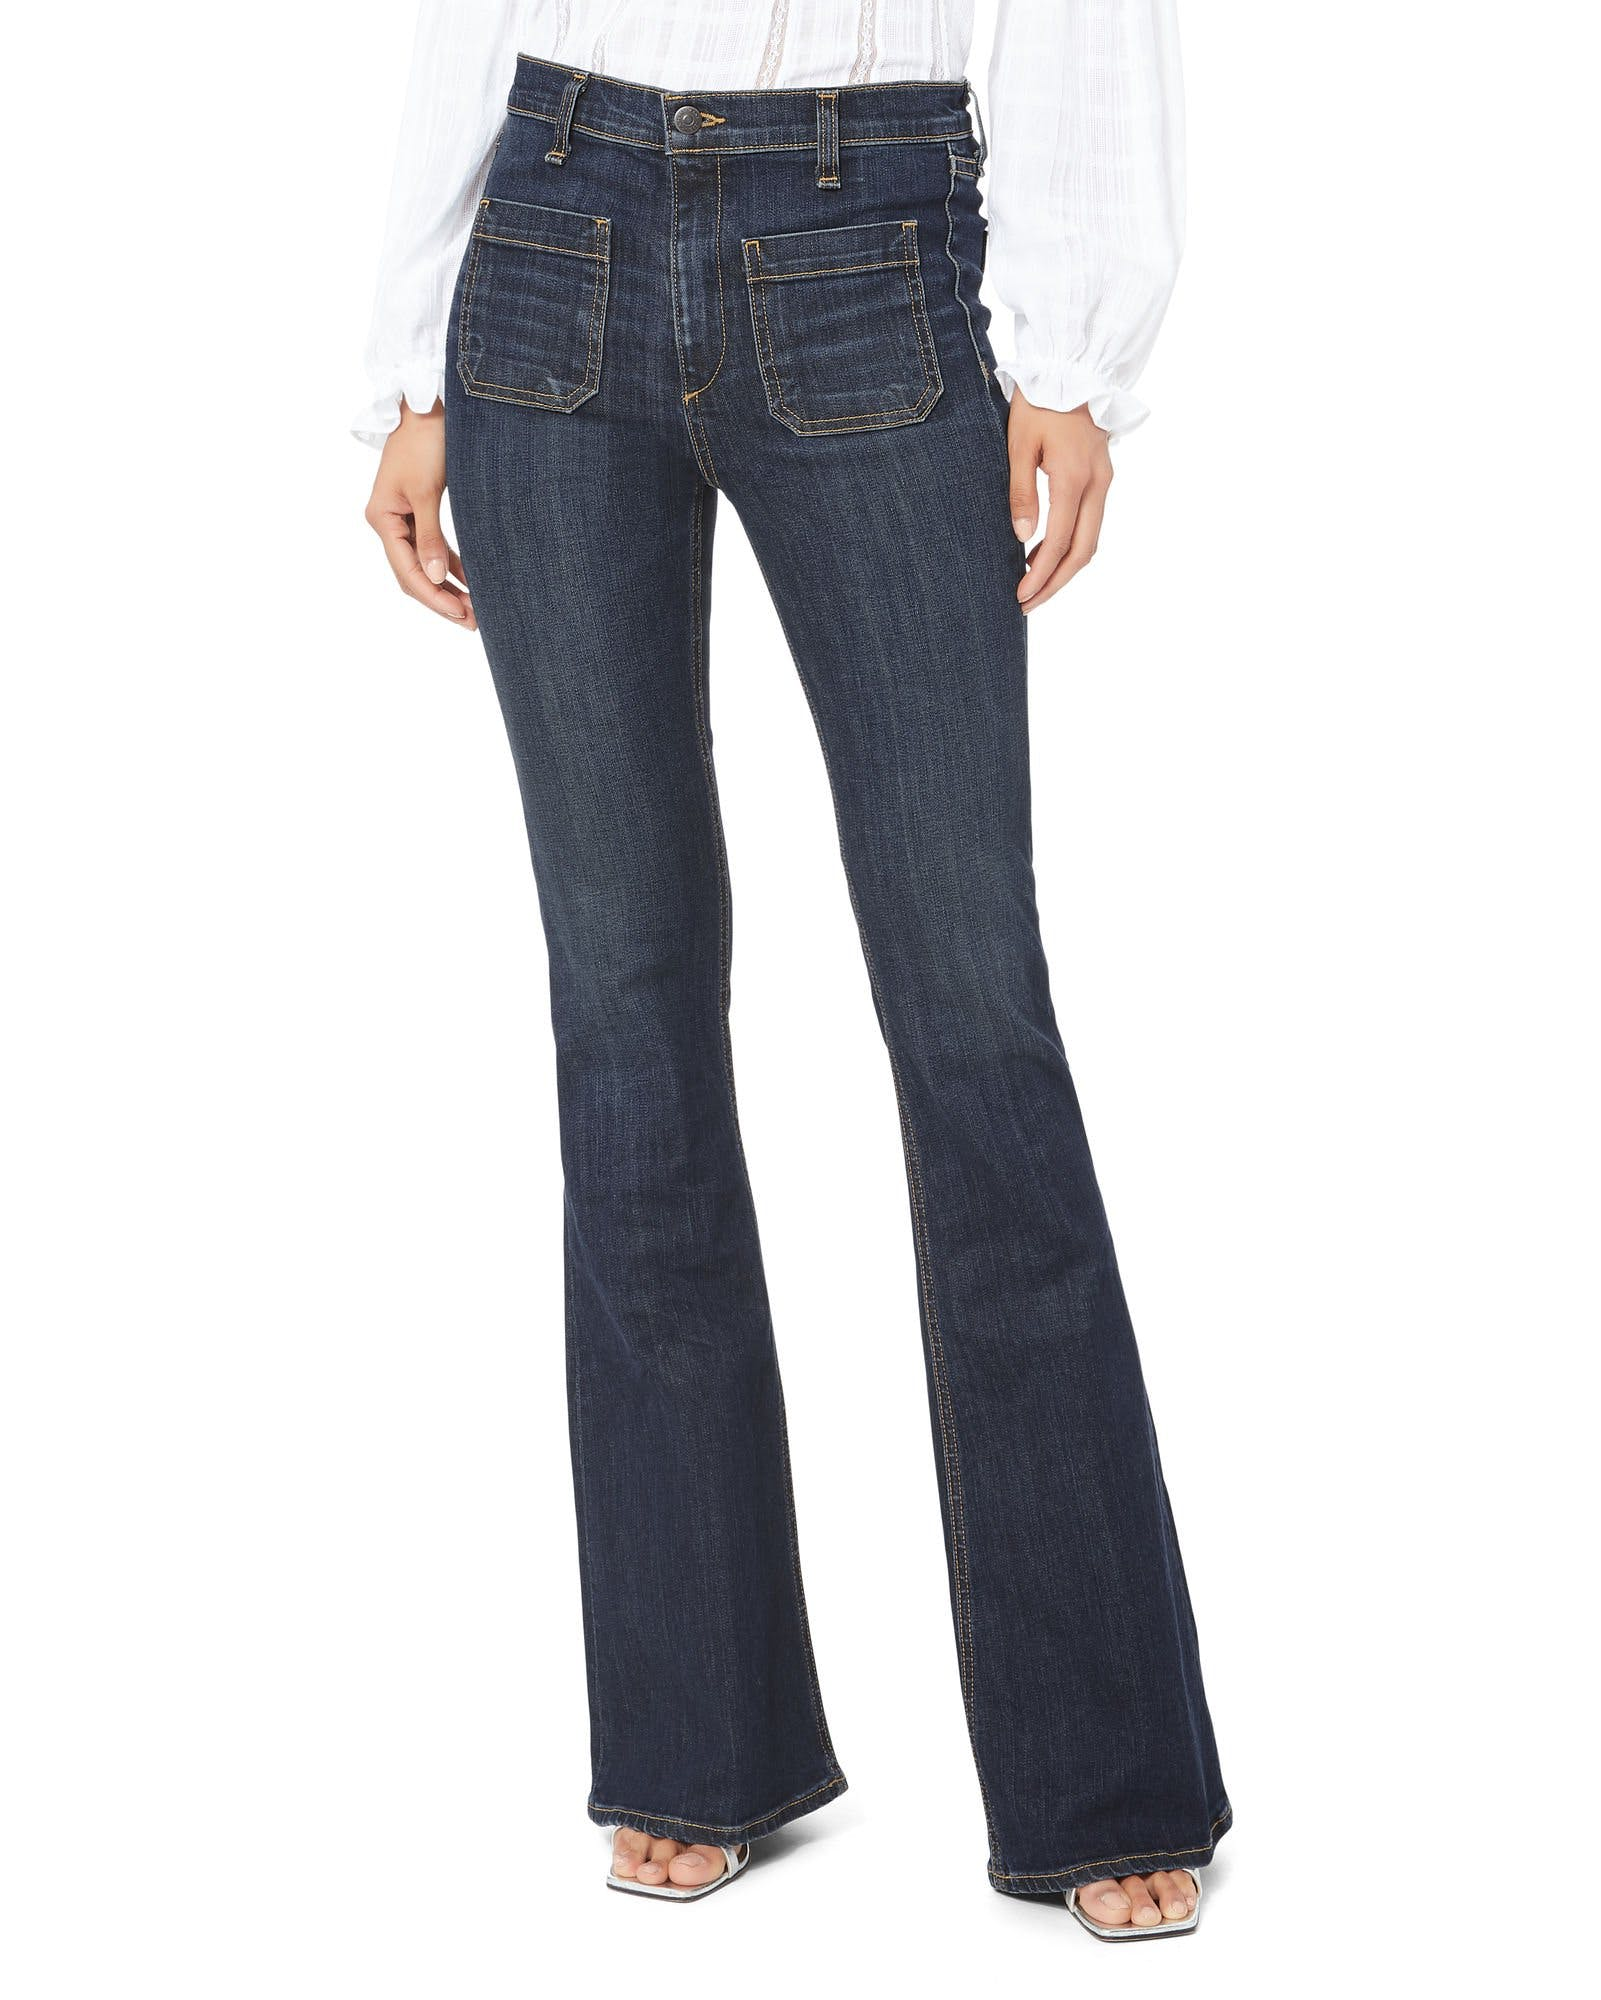 veronica beard, veronica beard jeans, high rise jeans, flares, flared jeans, sailor jeans, patch pocket, front pocket